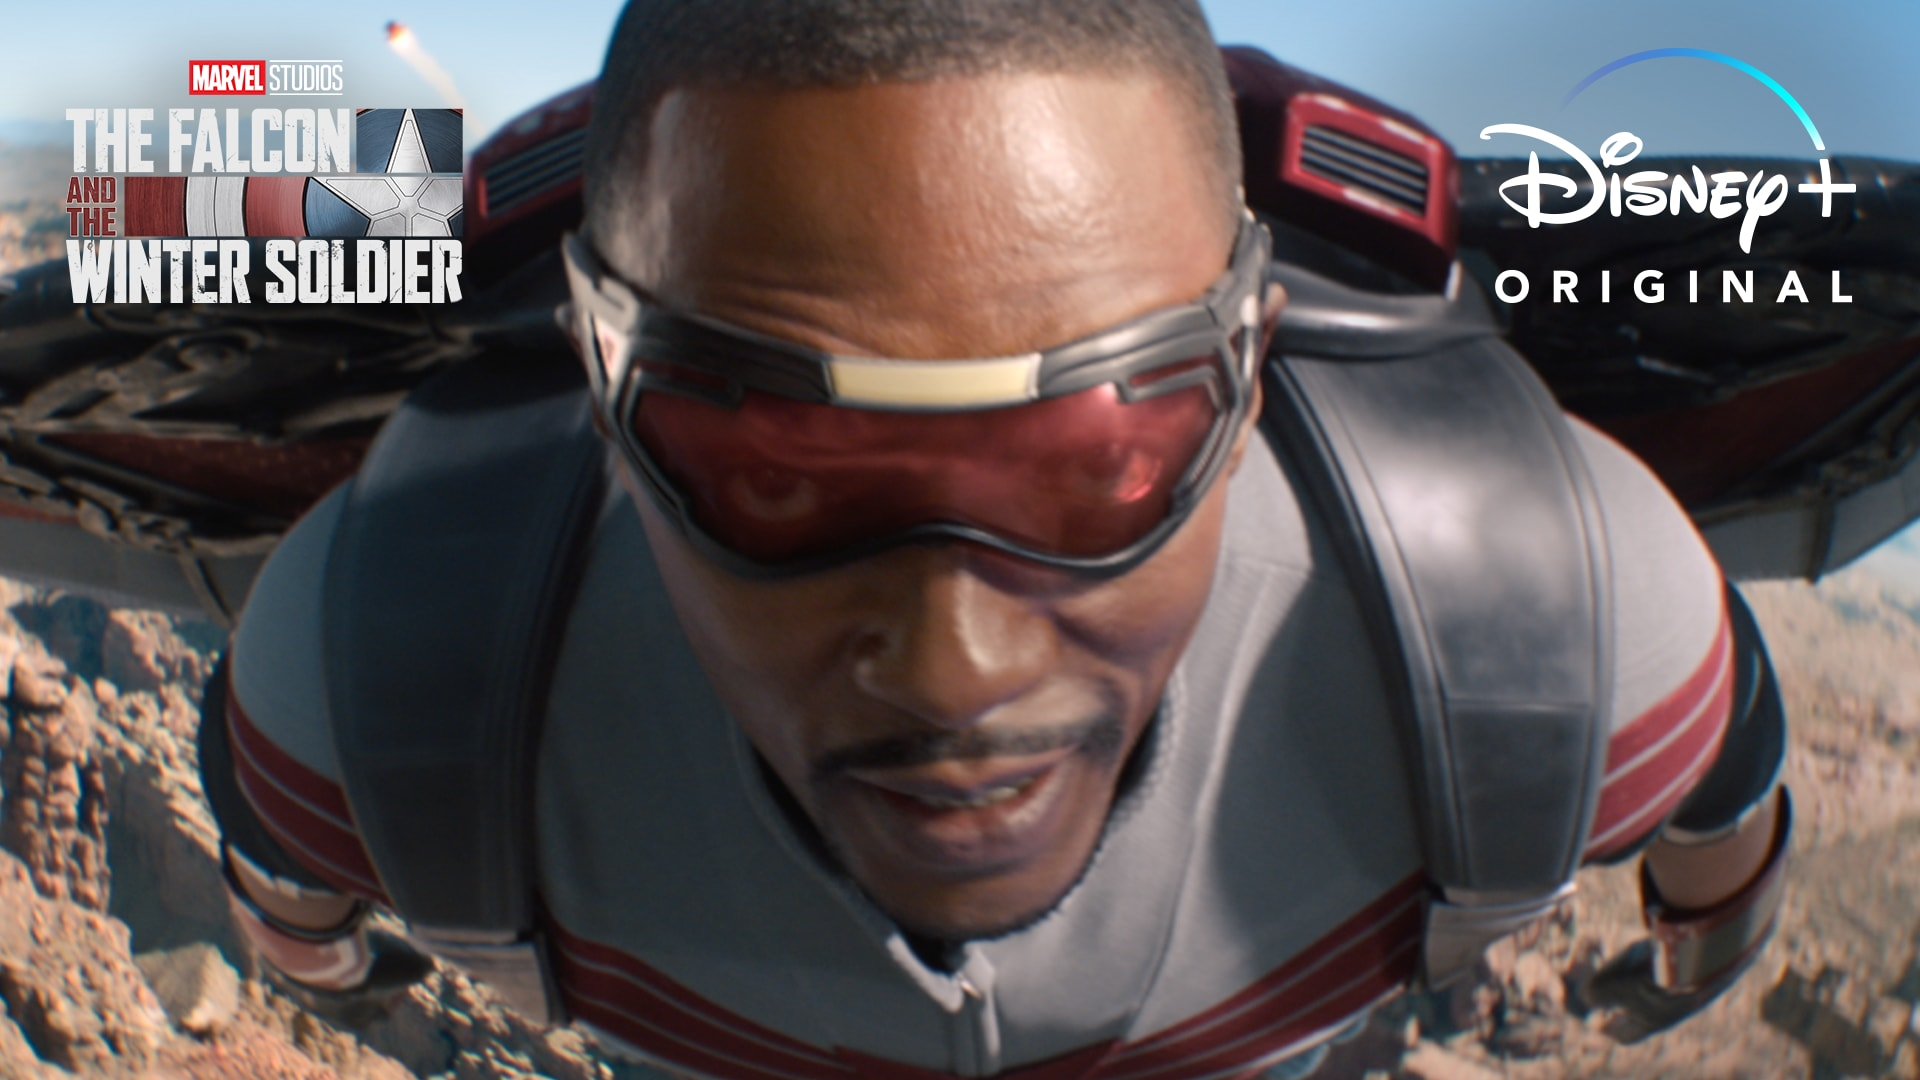 Plan | The Falcon and the Winter Soldier | Disney+